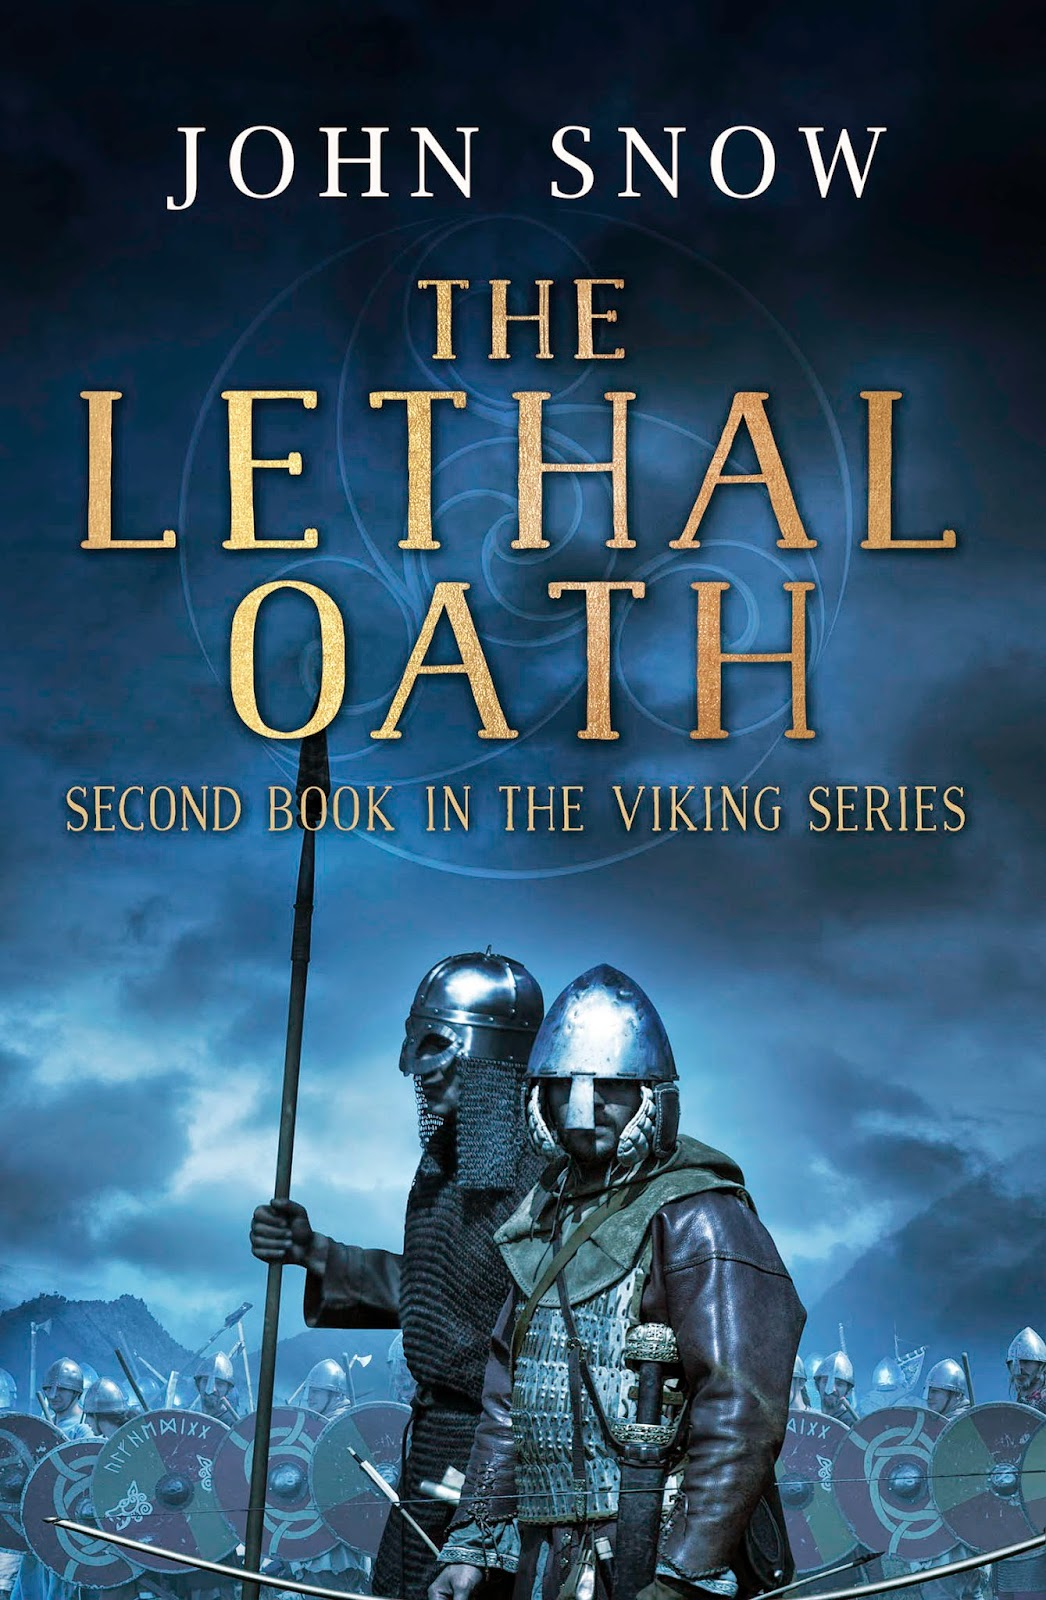 John Snow. The Lethal Oath. Cover Image.